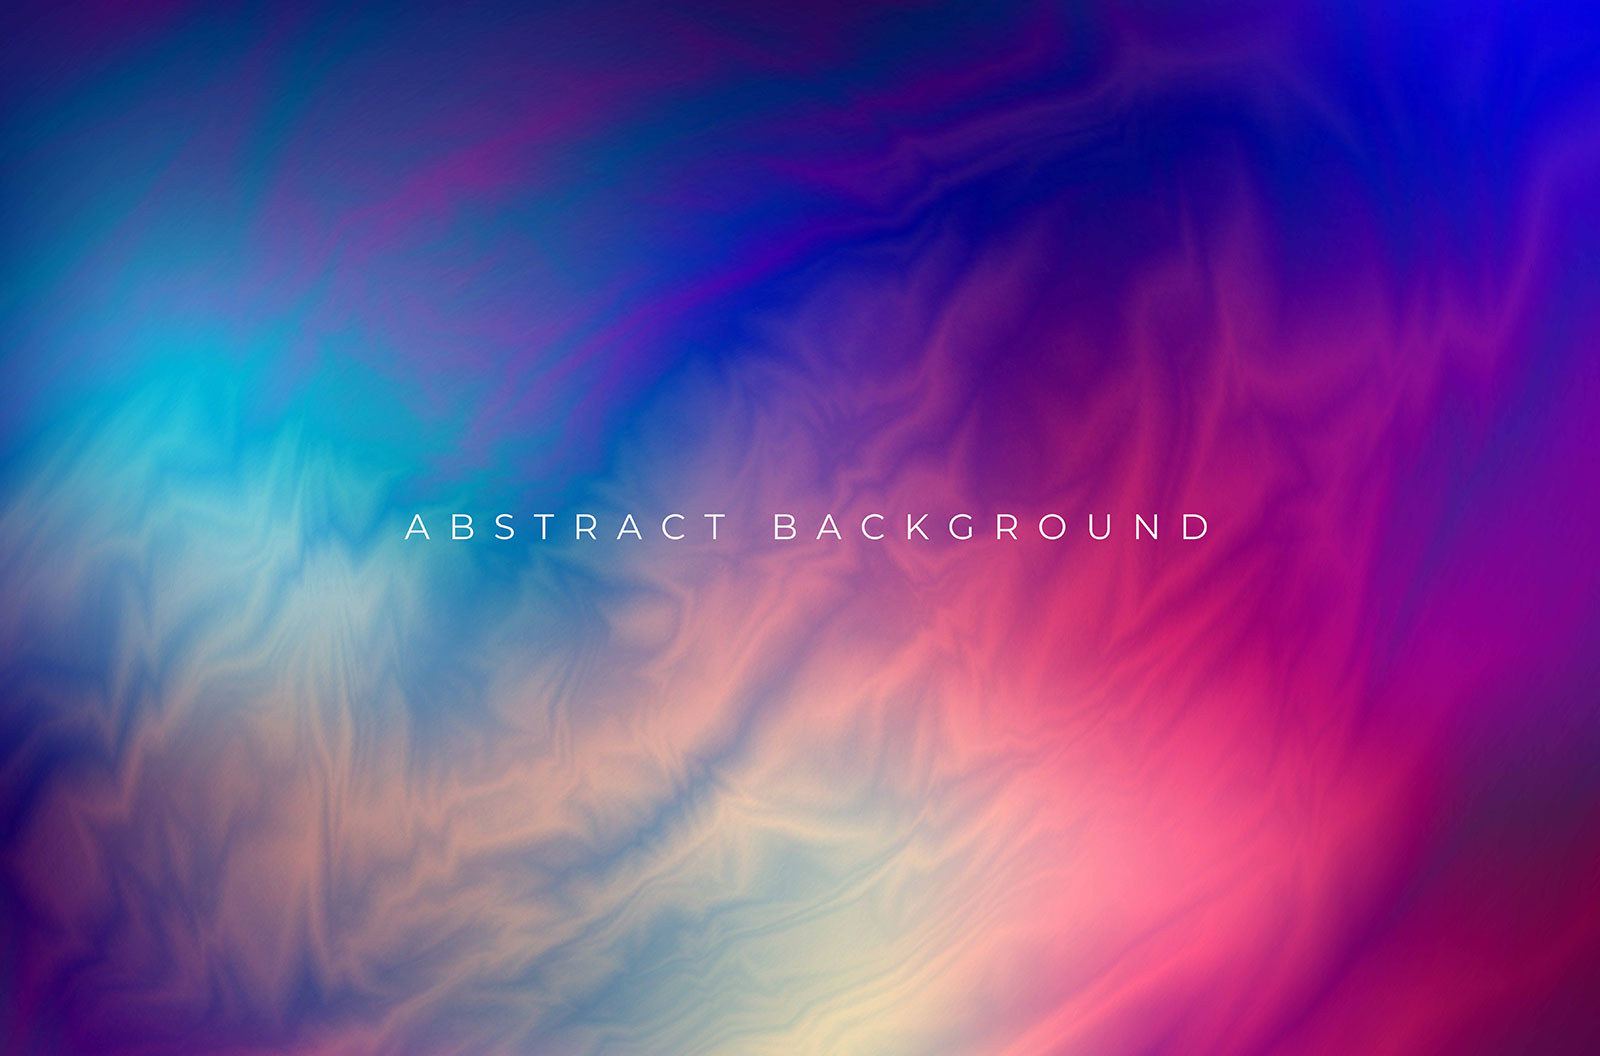 Abstract, multicolored, textured backround